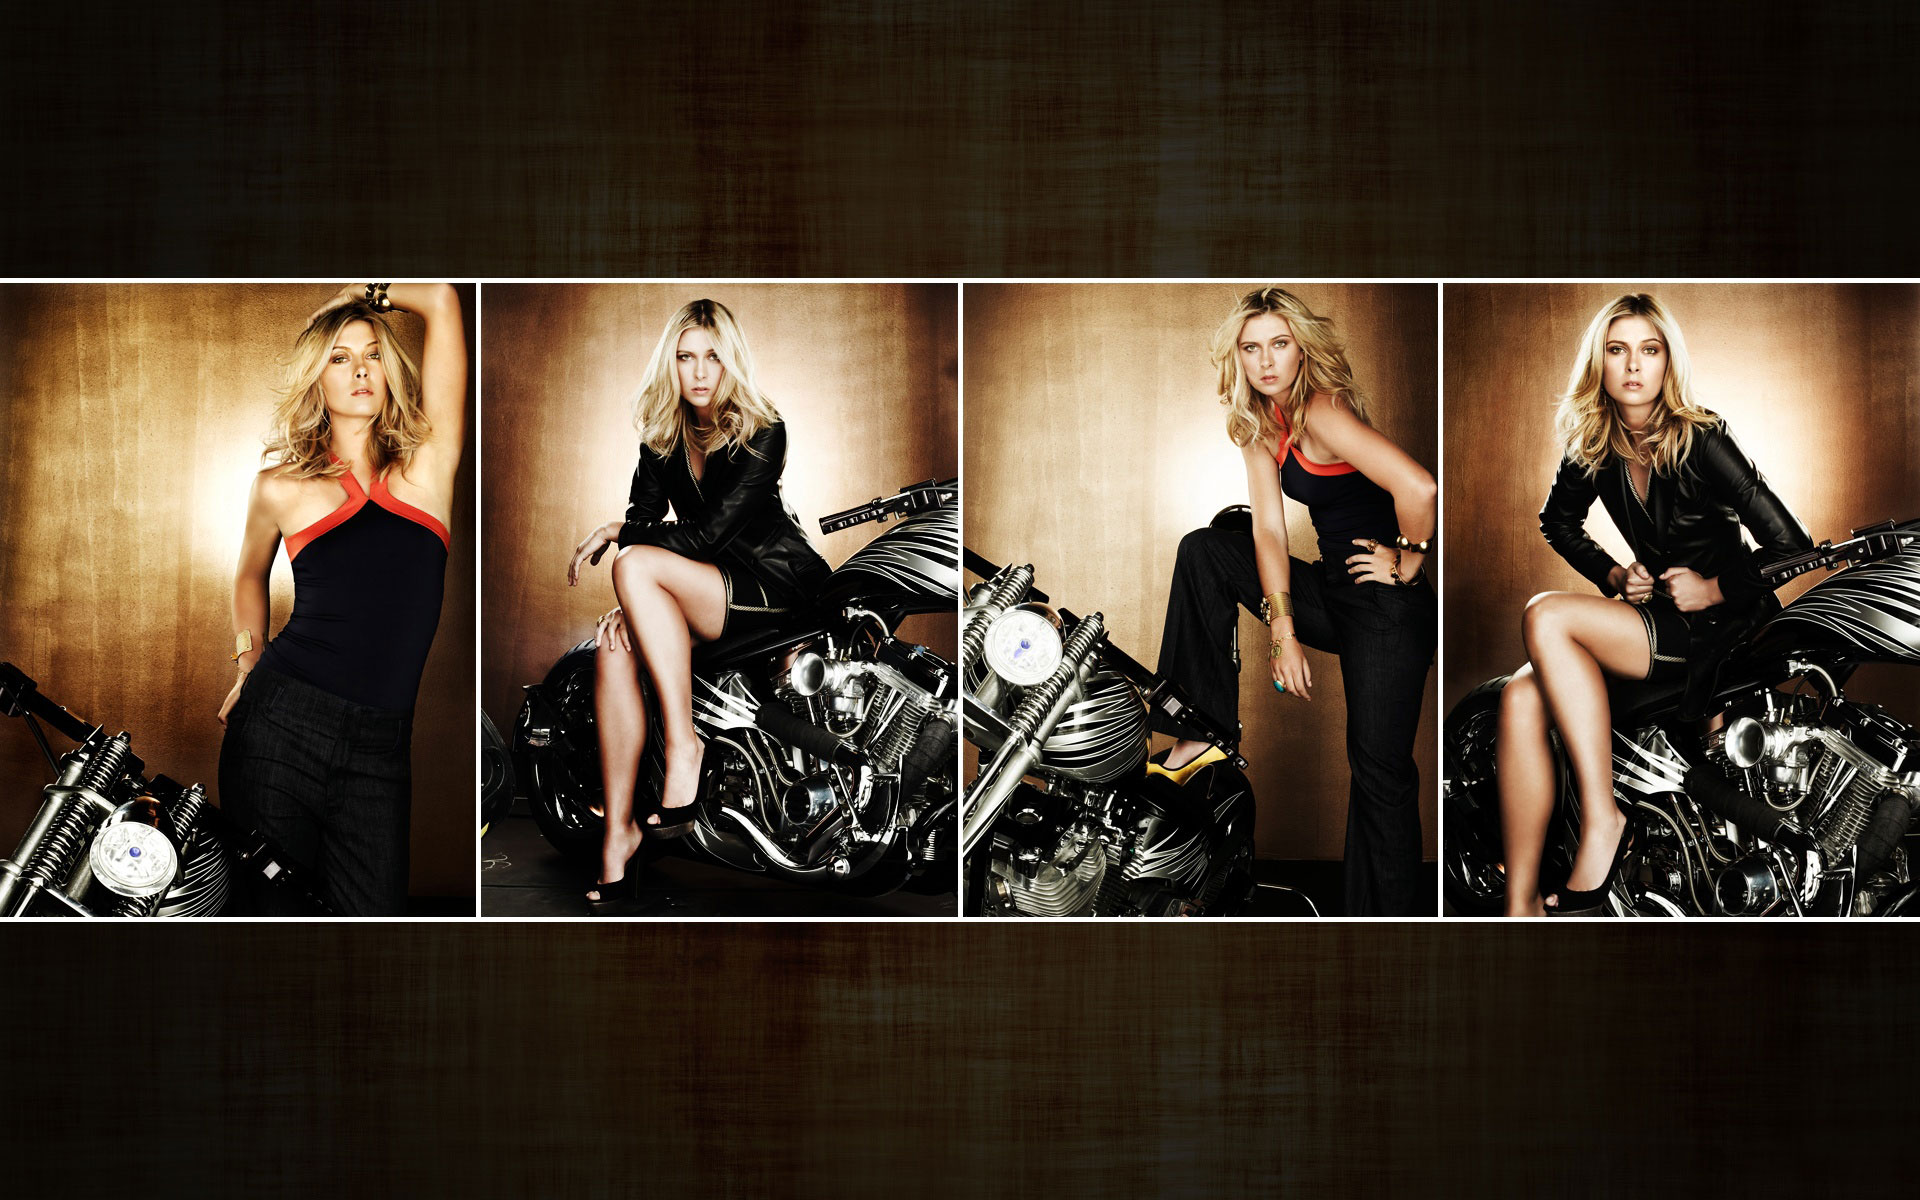 Maria Sharapova Widescreen wallpaper